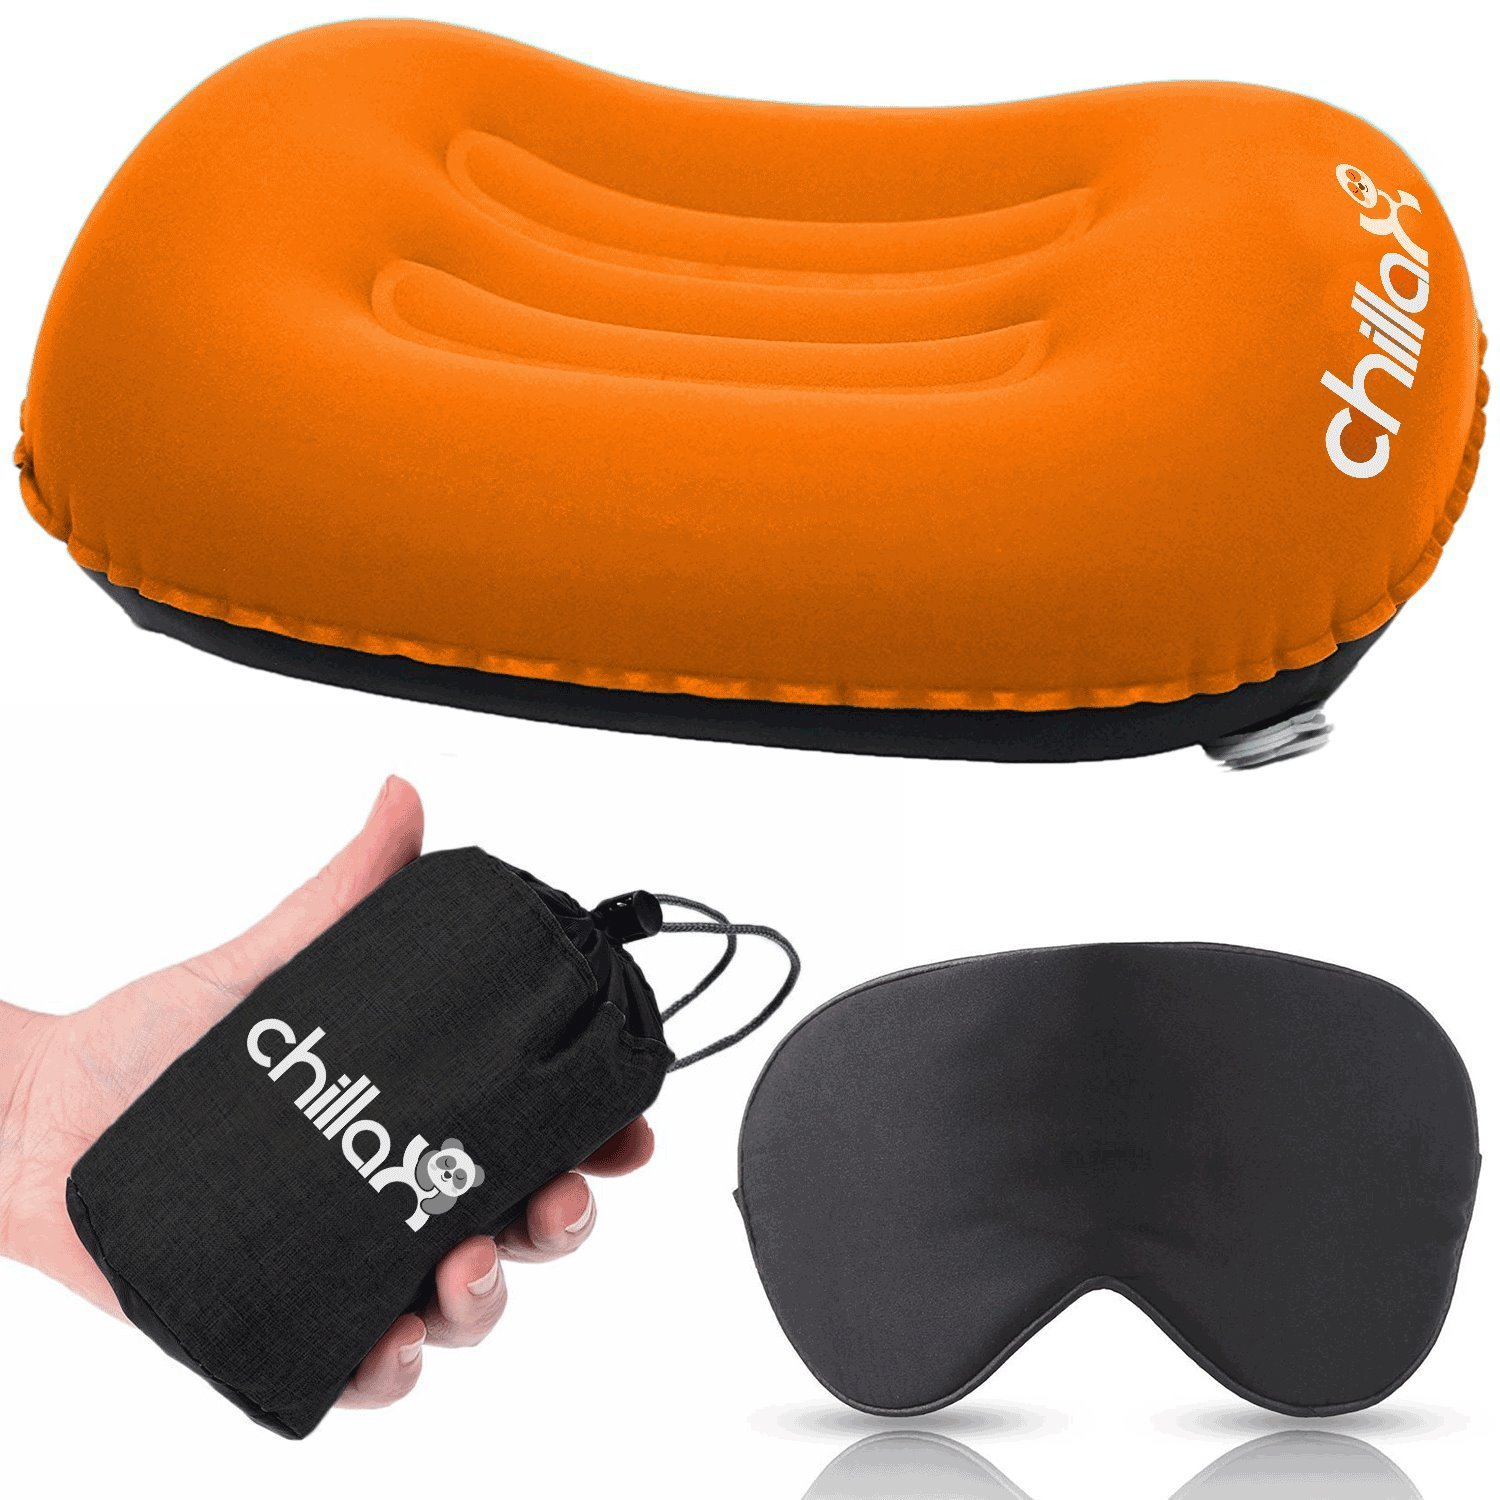 ChillaX Inflatable Camping Pillow